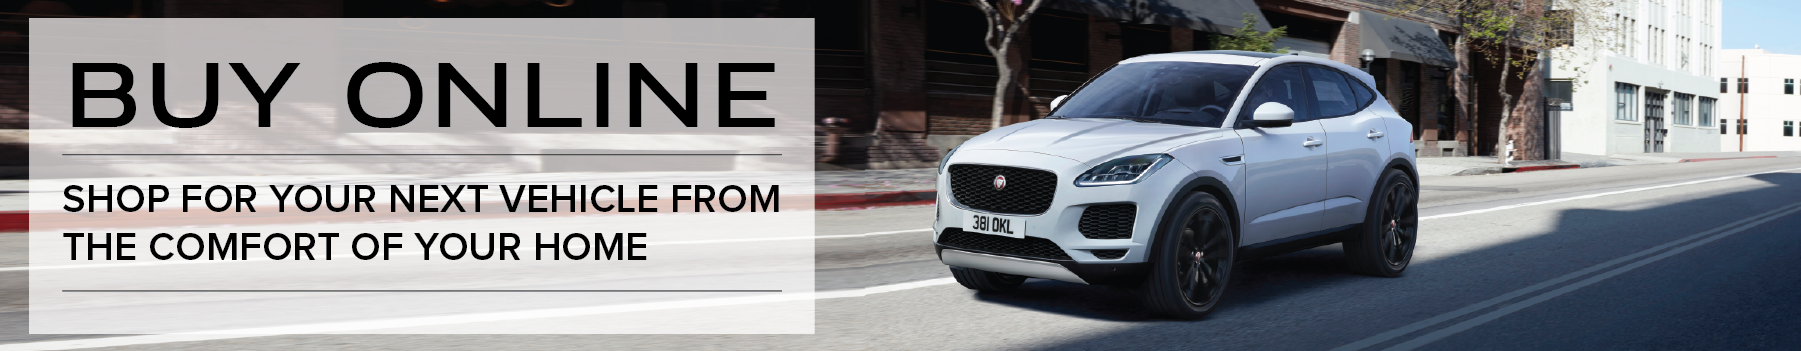 White 2020 Jaguar E-PACE on city roadBuy online - purchase your next vehicle from the comfort of your home. Click to view inventory.